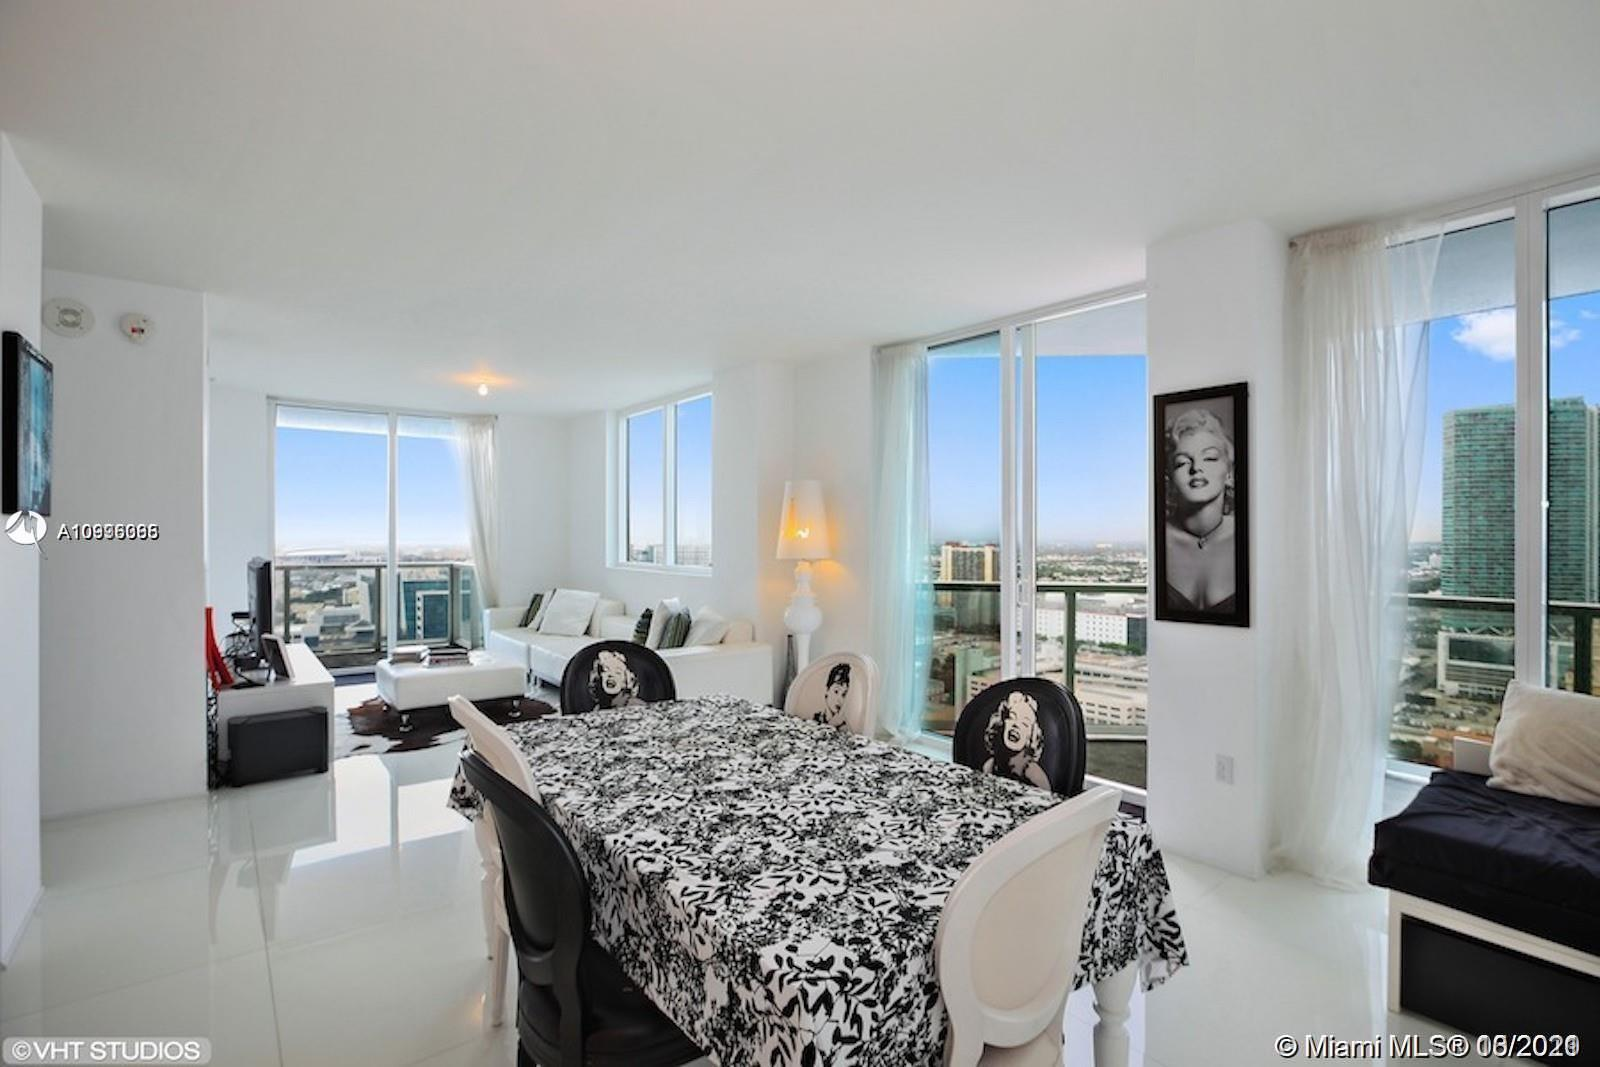 Beautiful Corner 1,203sqft. 2 Bedroom 2 Bath at Vizcayne South Tower. Expansive city and bay view from the 33rd floor of both balconies. Unit comes fully furnished, porcelain floor throughout, roller blackouts in both bedrooms. Unit can be rented up to 12 times/year ( 30 days minimum lease ). 1 Parking + 1 Storage included.